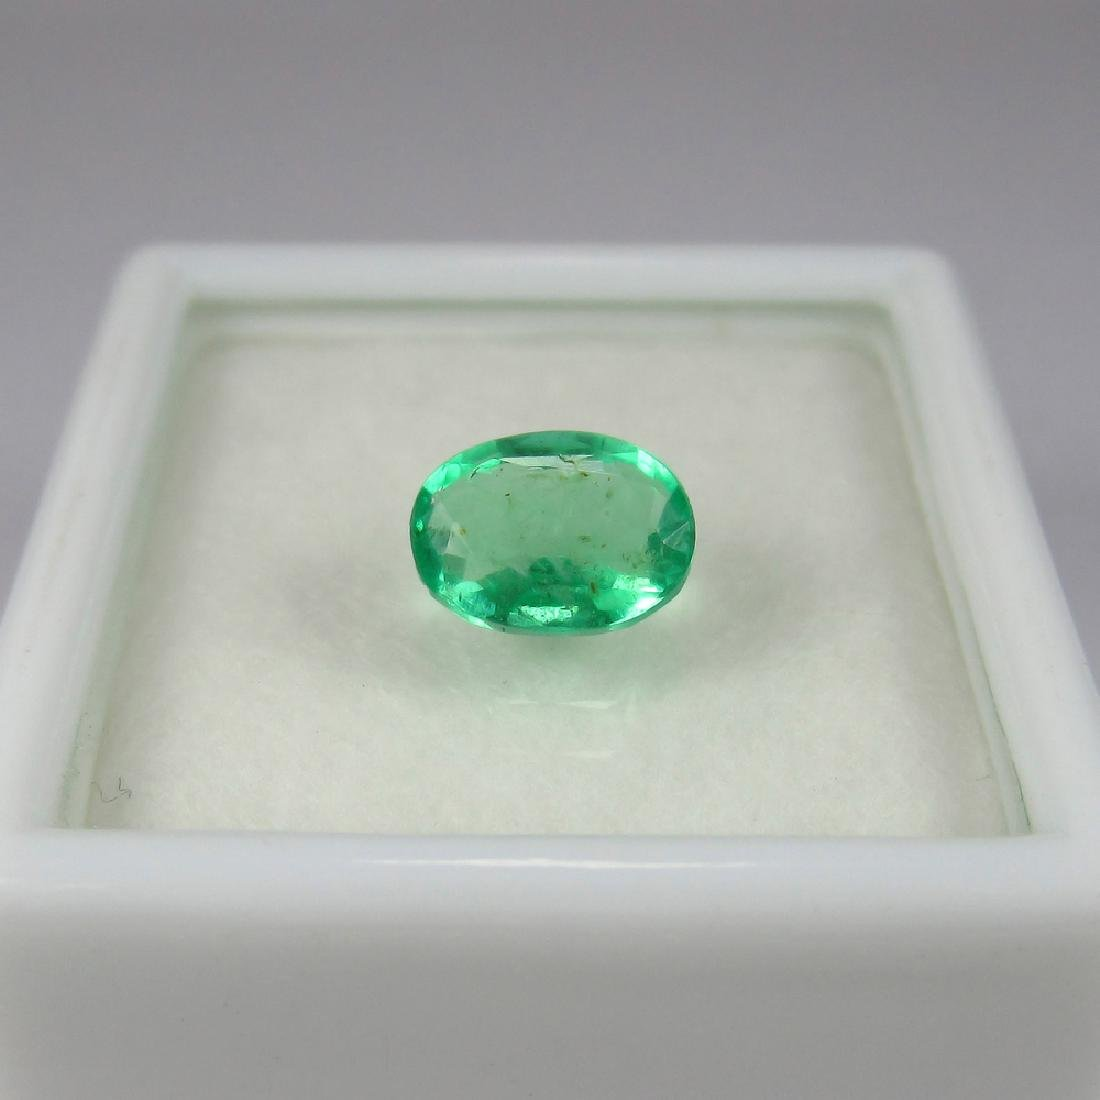 1.08 Carat Natural Loose Emerald Oval